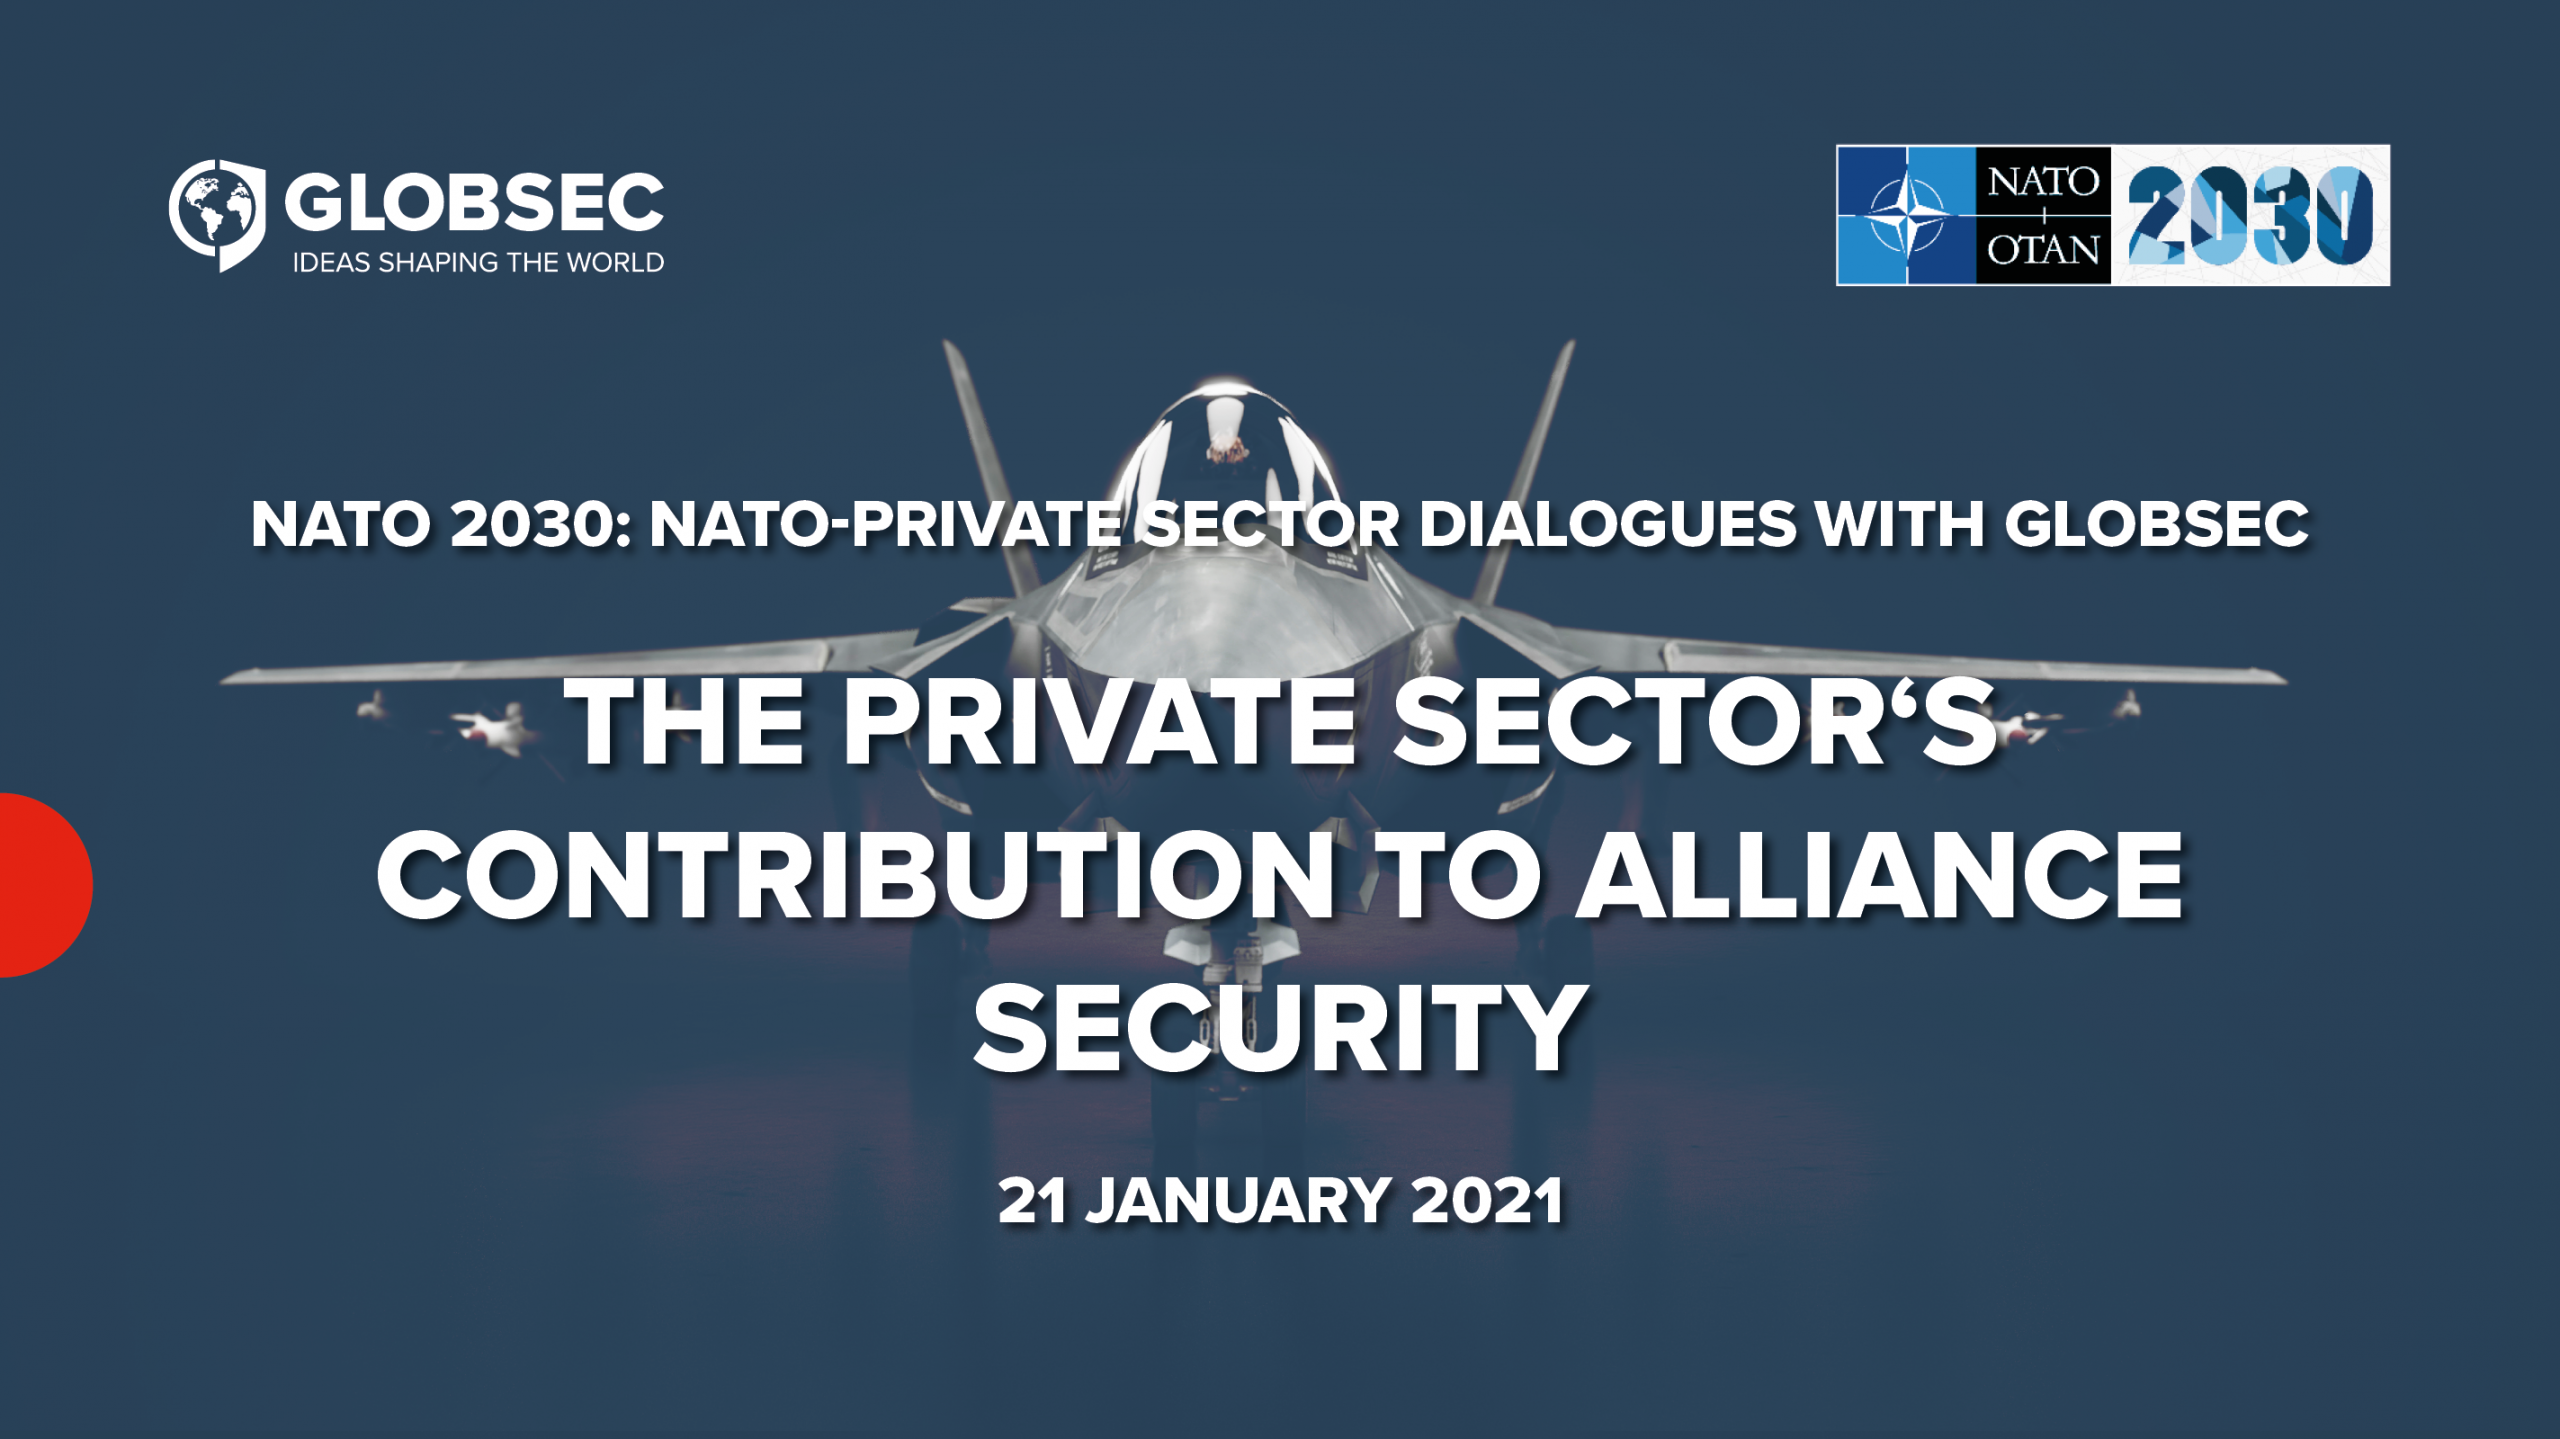 The Private Sector's Contribution to Alliance Security